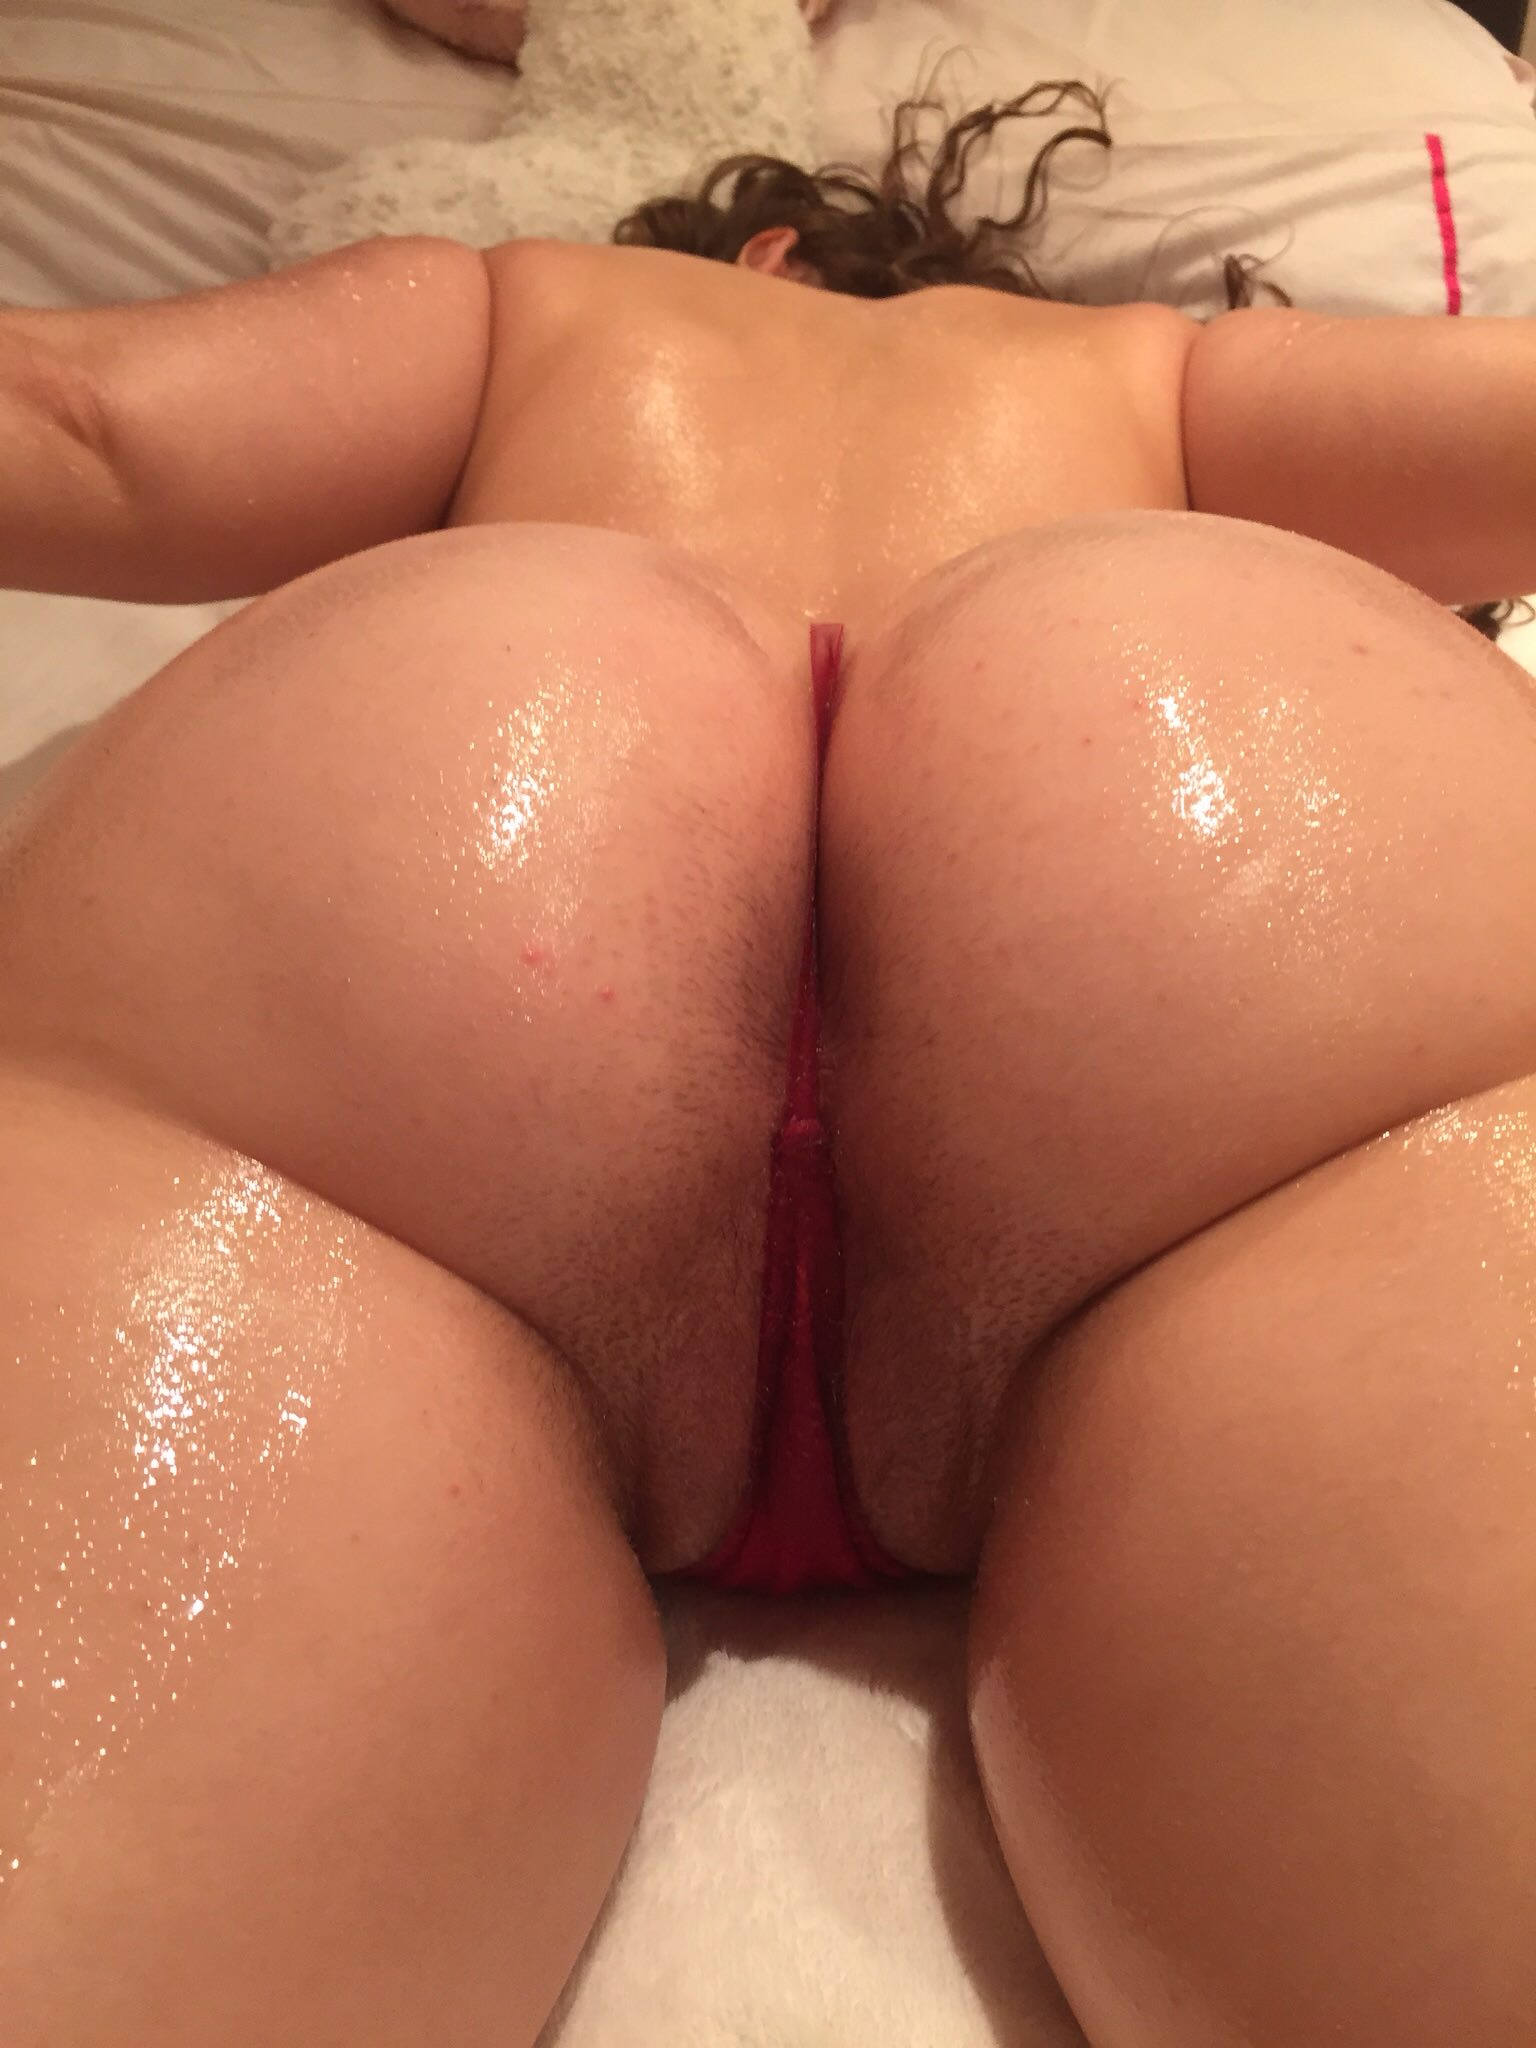 Tight pussy tighter ass torrent — photo 1